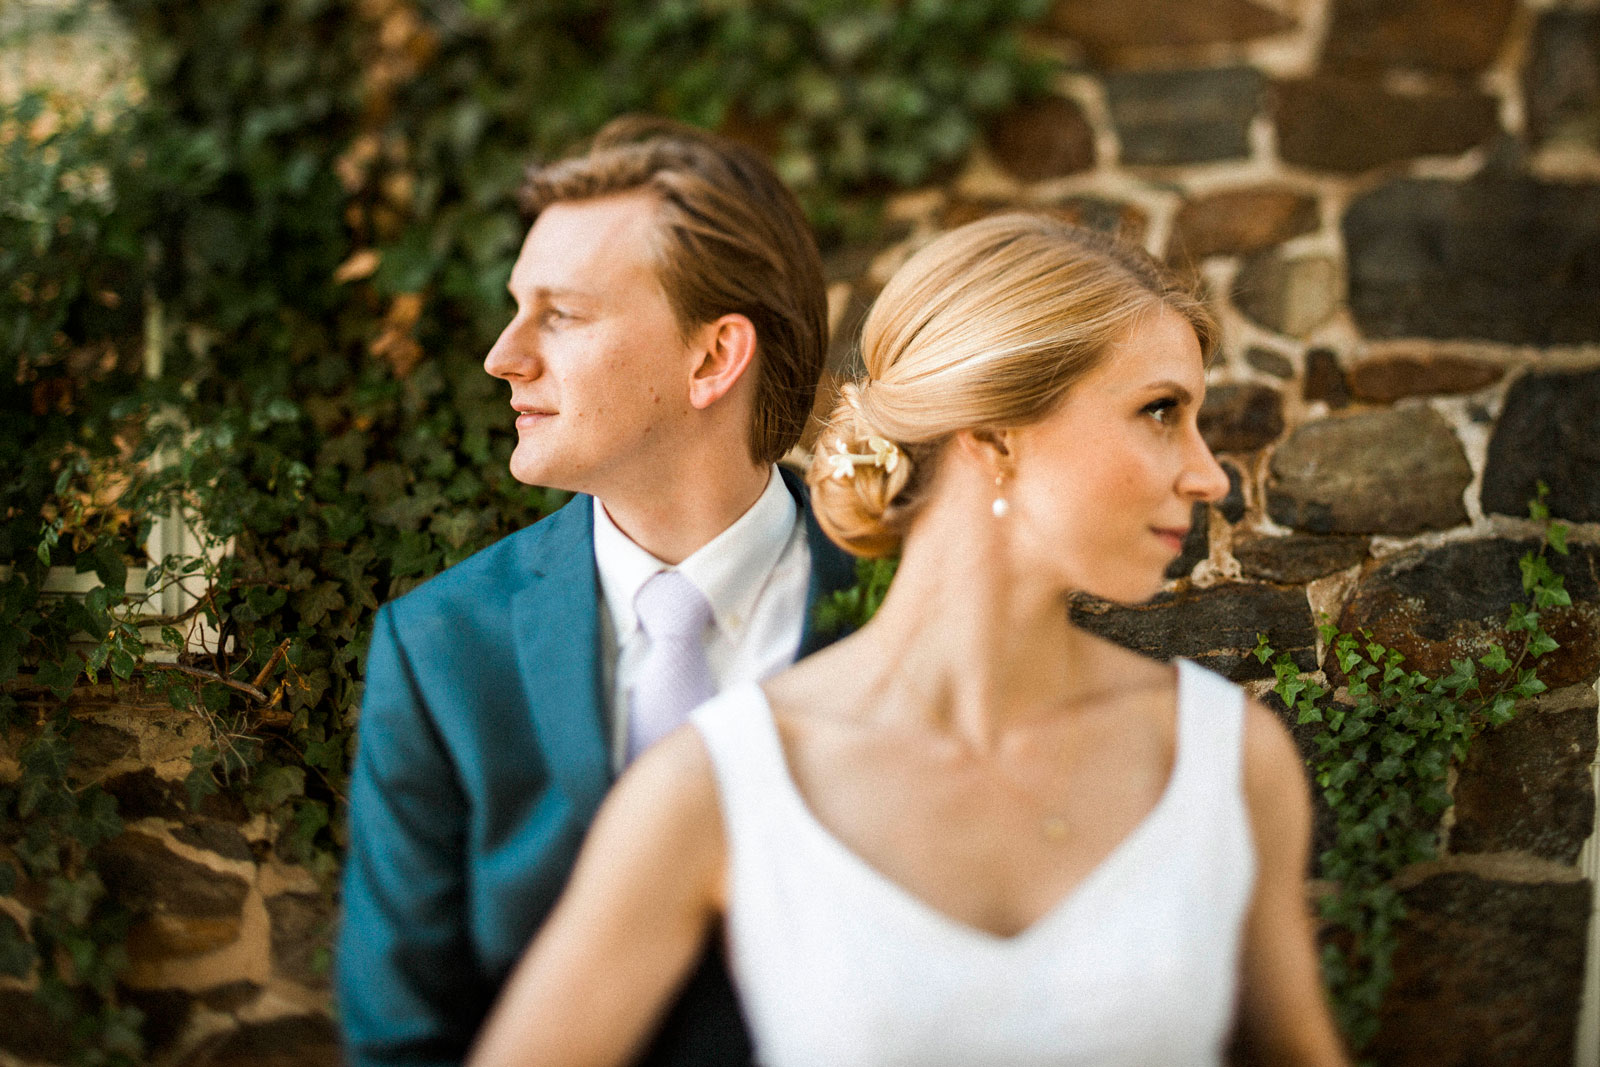 Allison Rogers marries Liam Phibbs at the Goodstay Inn and Gardens at the University of Delaware in Wilmington, Delaware June 10, 2017.